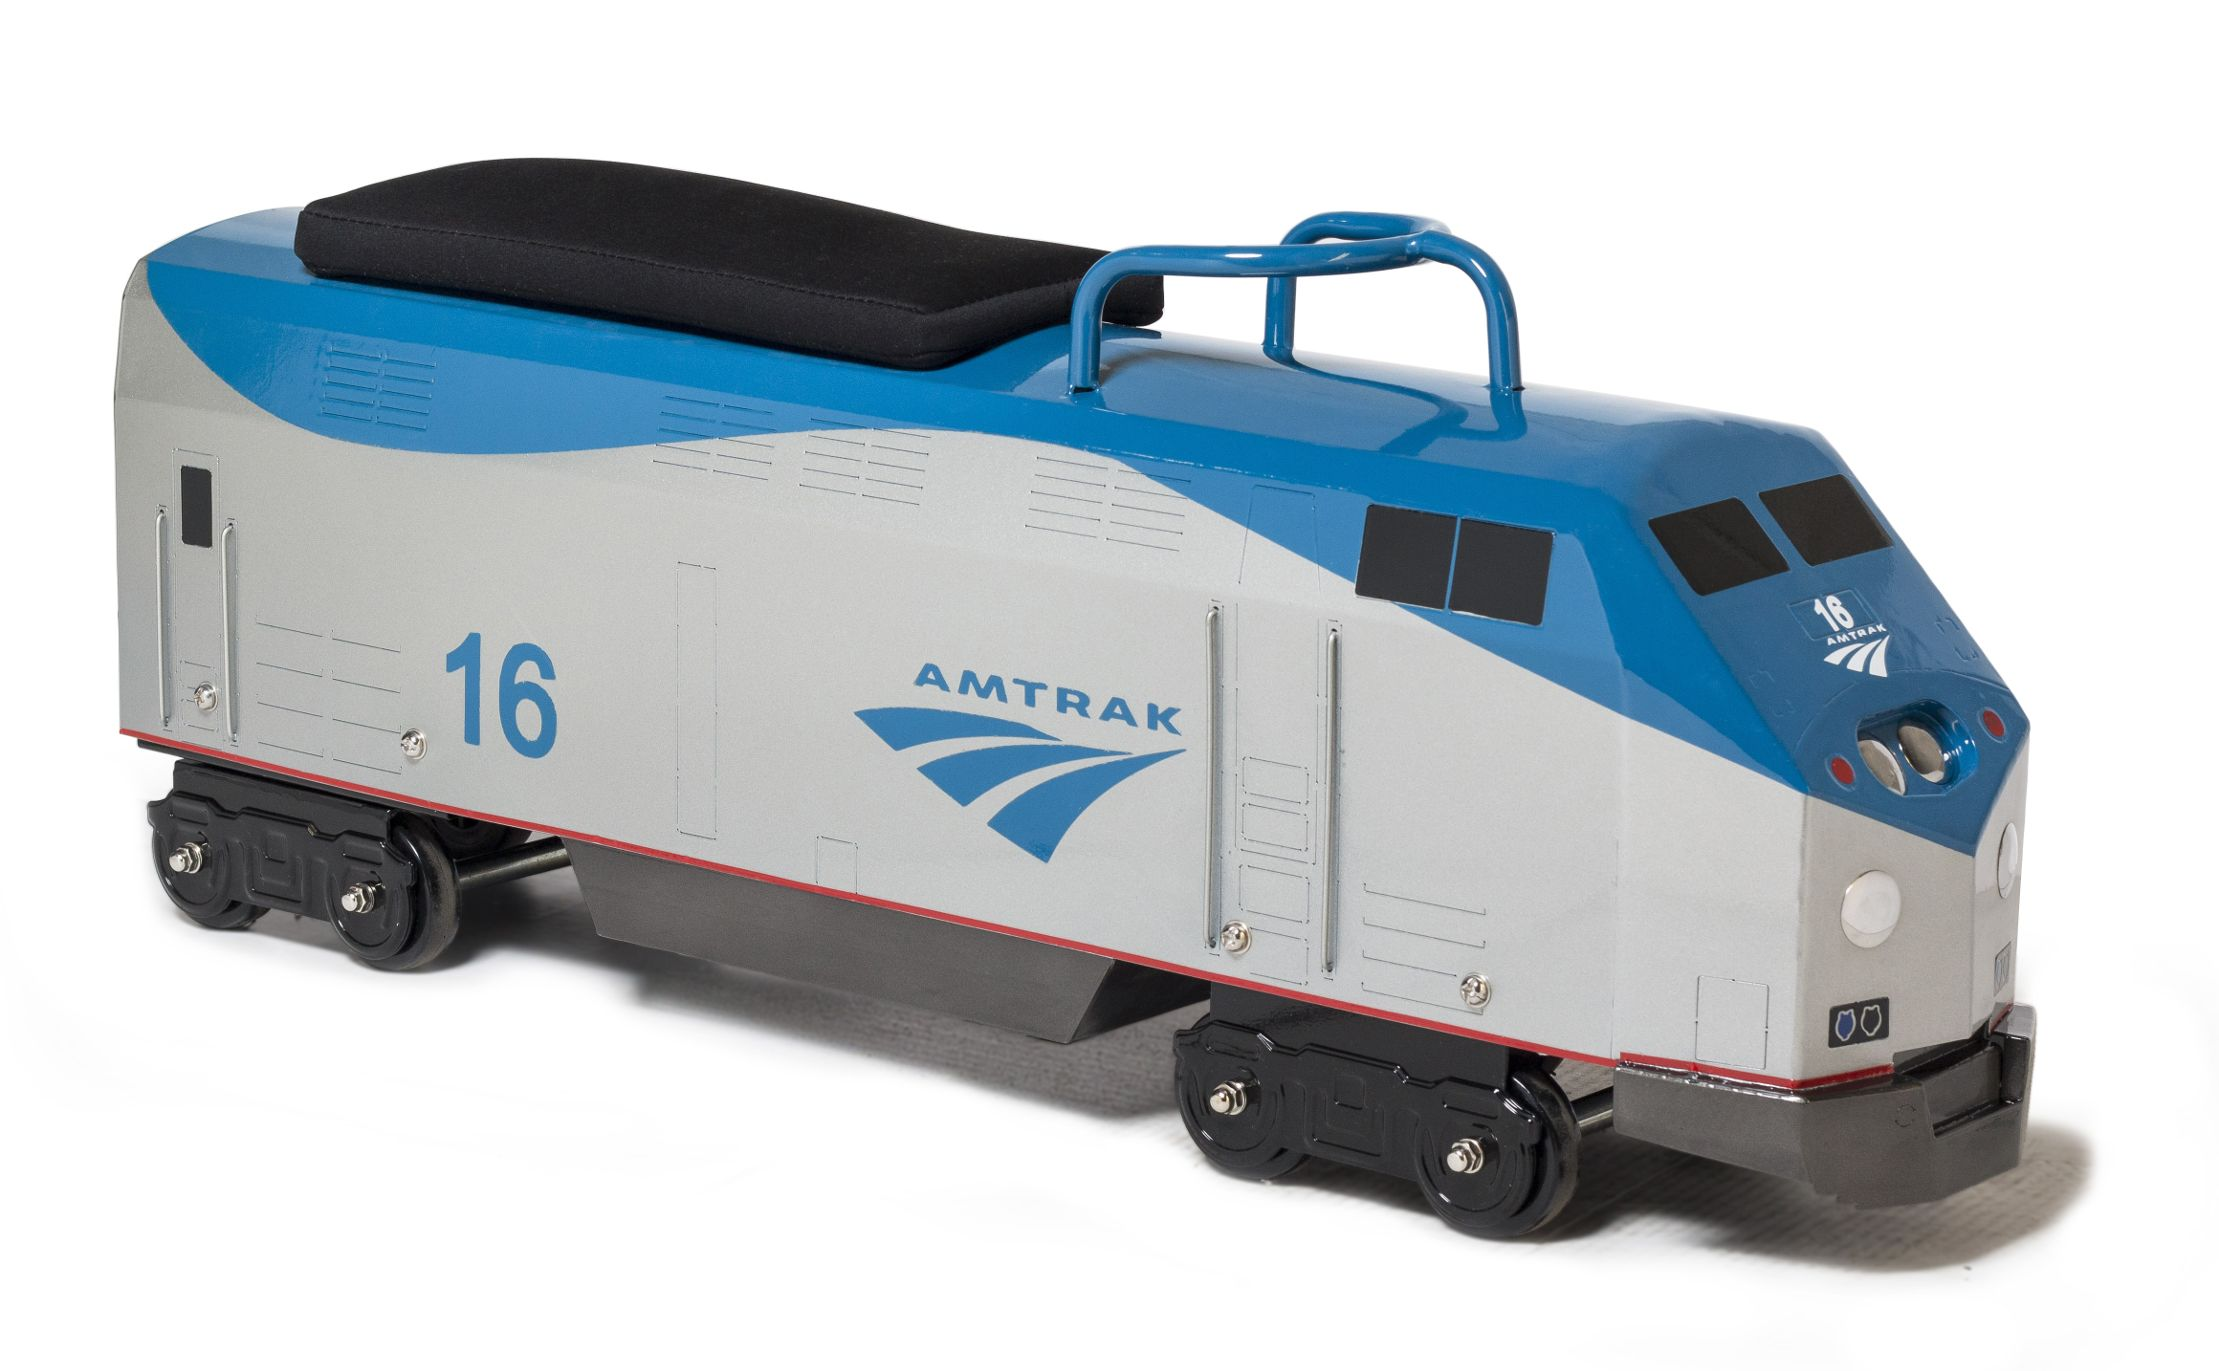 Amtrack Train Scootster